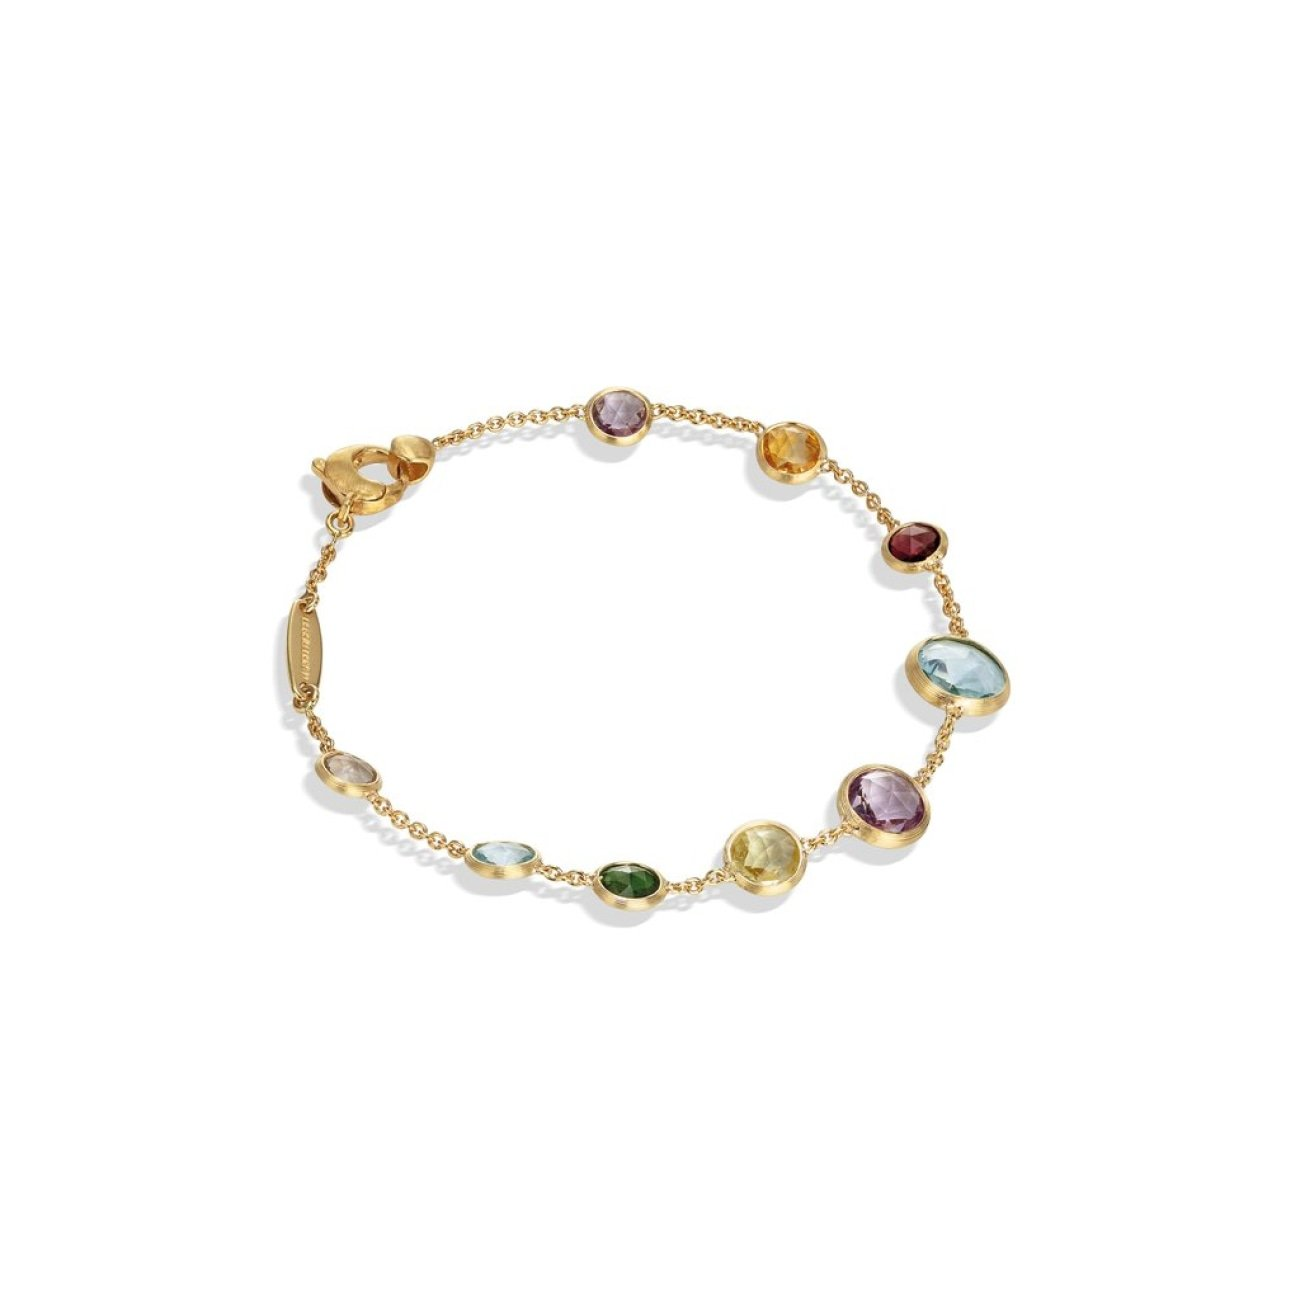 https://www.manfredijewels.com/collections/jewelry/products/jaipur-color-collection-18k-yellow-gold-mixed-gemstone-single-strand-bracelet-1